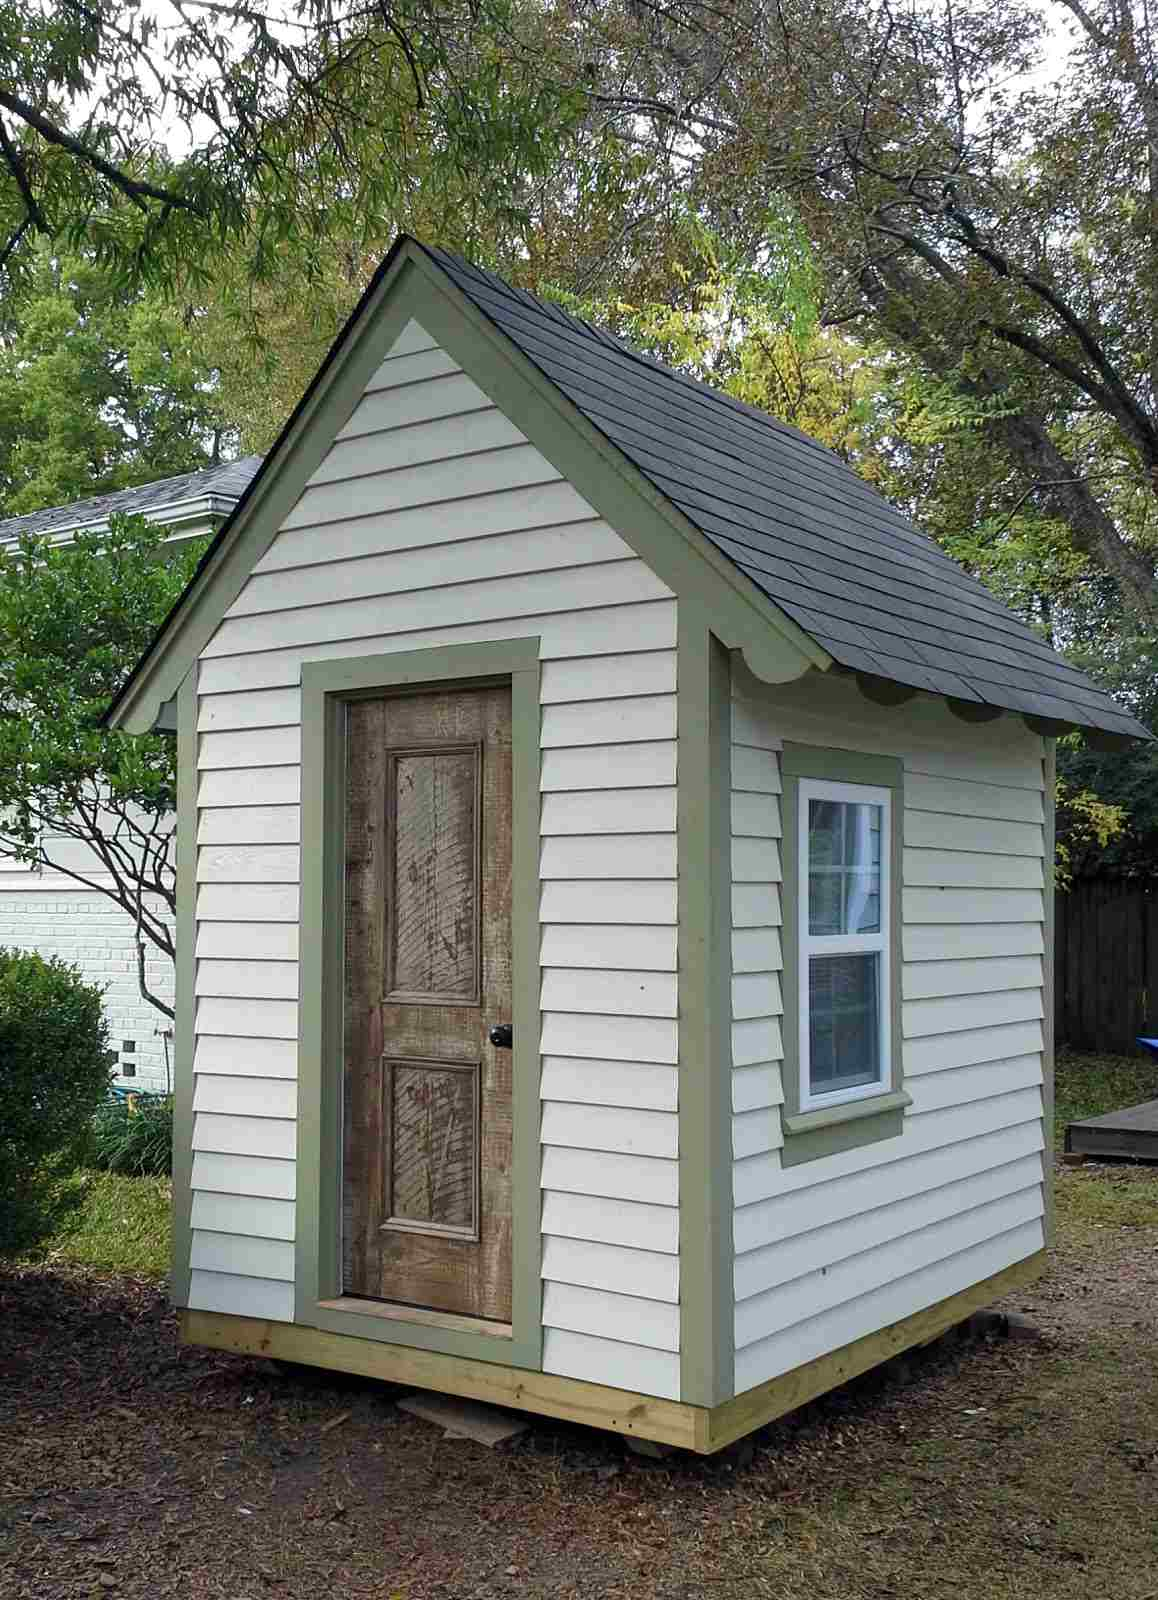 13 Free Playhouse Plans the Kids Will Love – Playhouse With Garage Plans